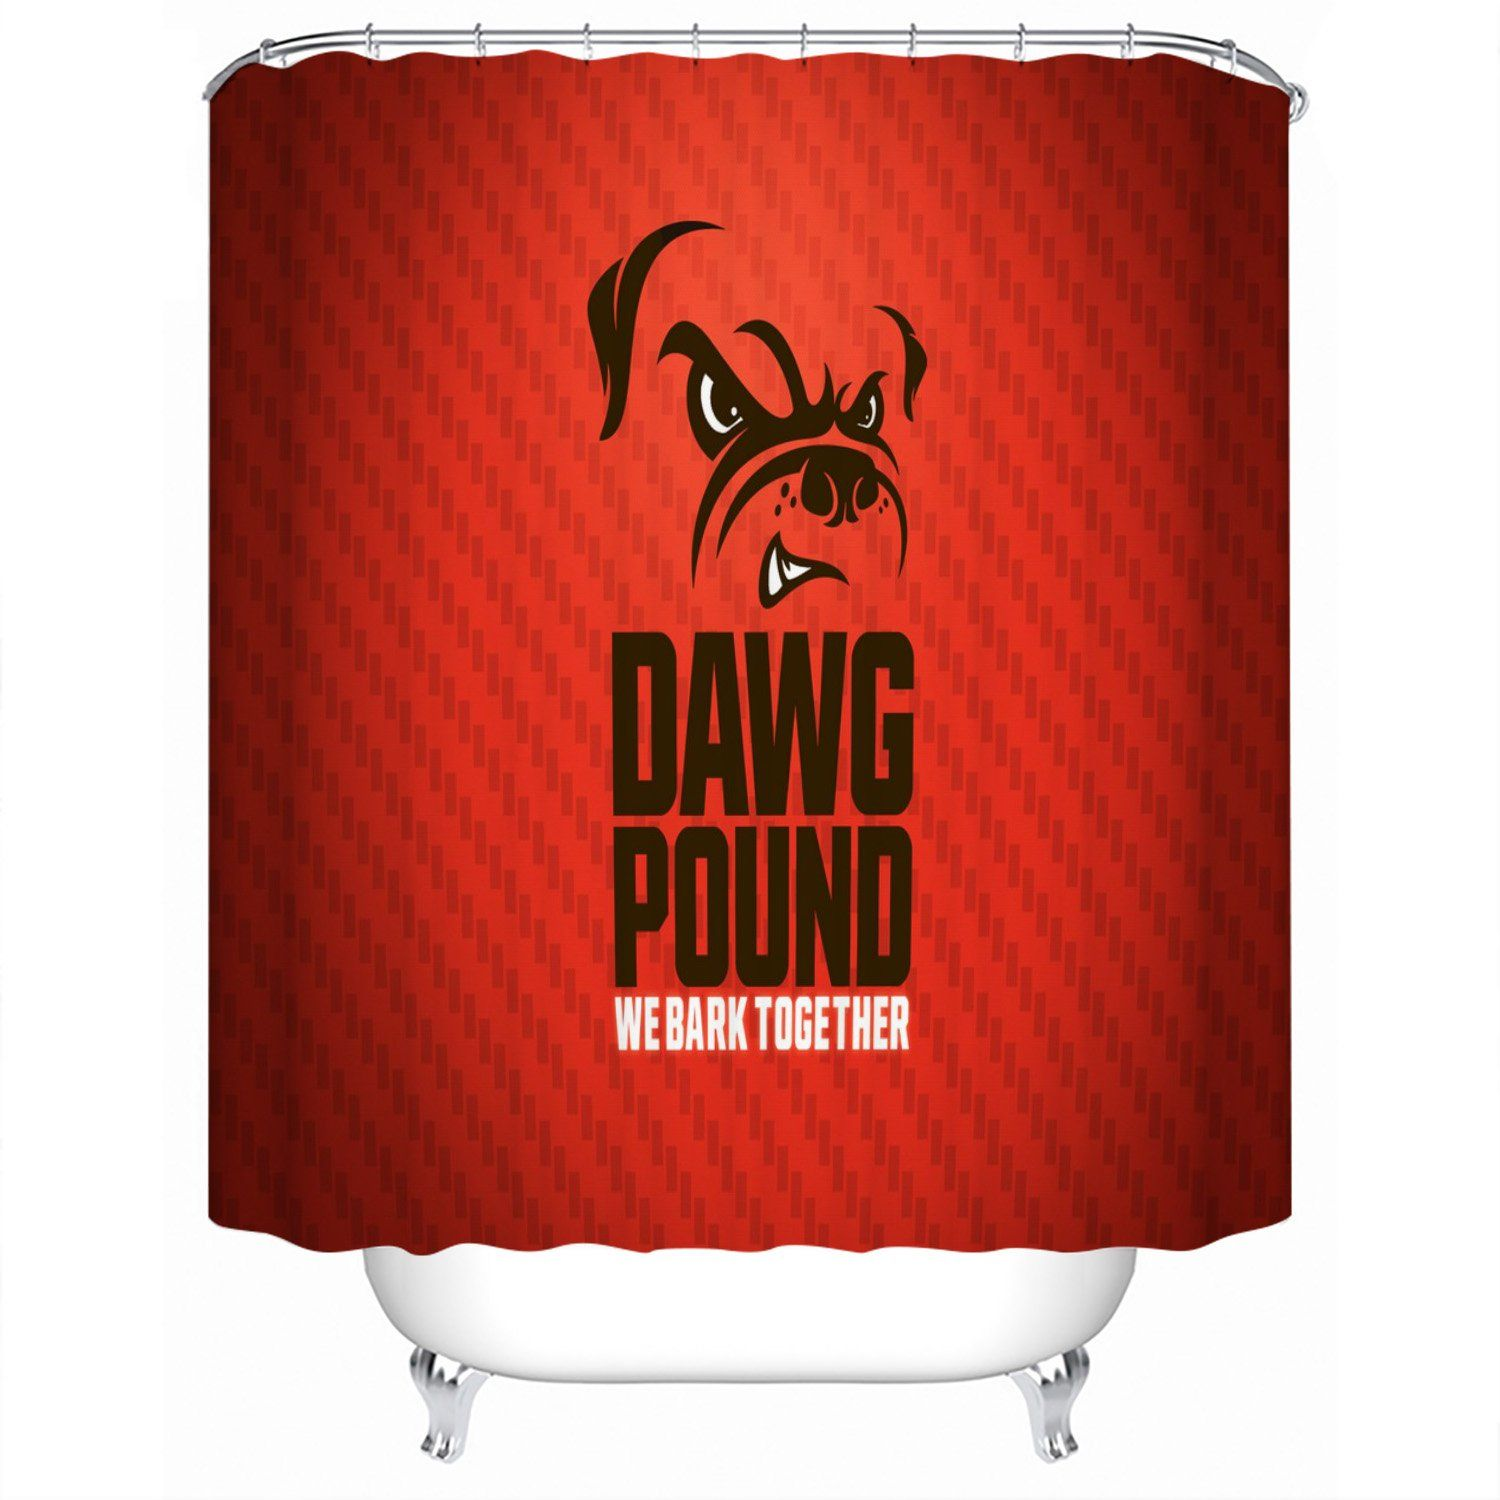 Cleveland Browns Shower Curtain For Bathroom In 2020 Brown Shower Curtain Shower Curtain Decor Shower Curtain